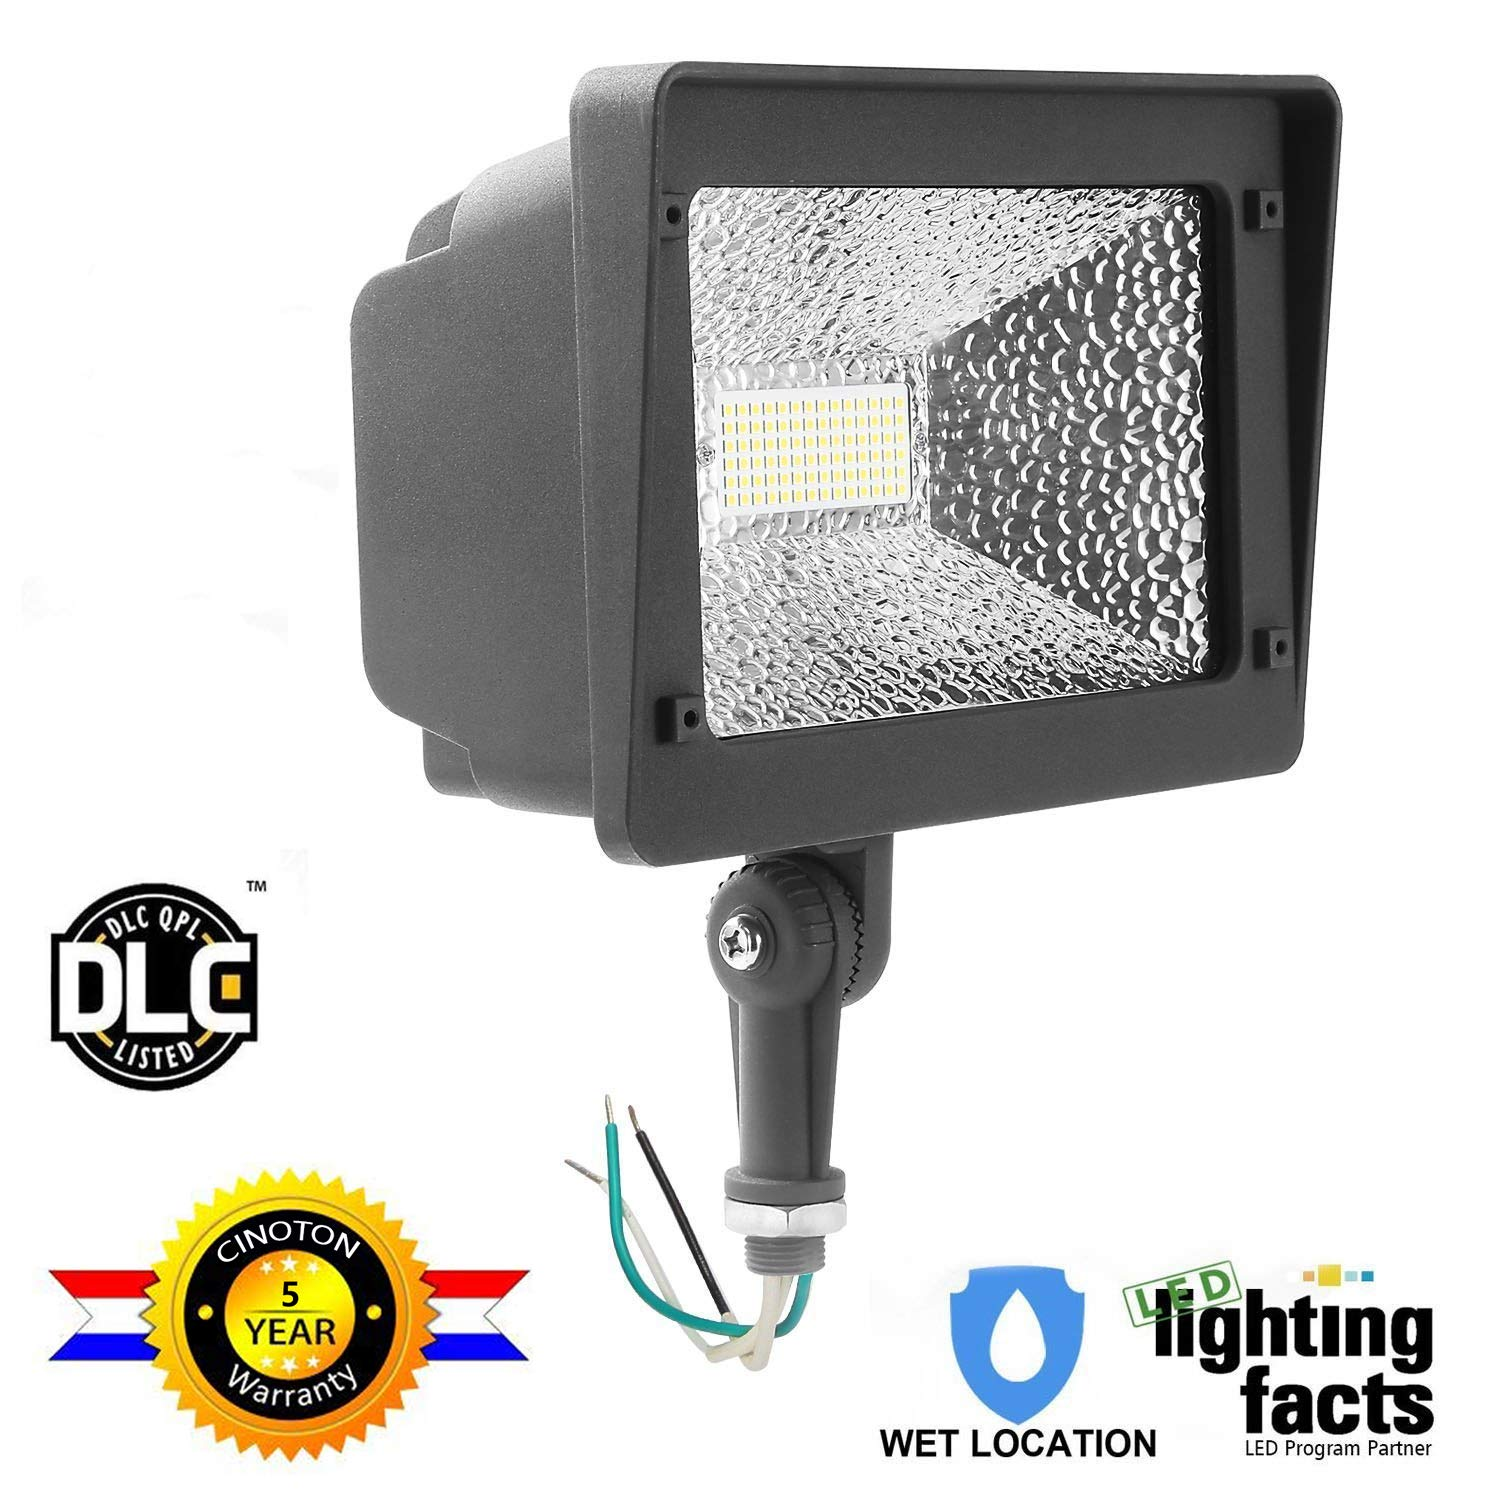 Cinoton LED Flood Light,180°Adjustable Knuckle, 50W Security Outdoor Lighting (250W Equivalent), 5500 Lumen, 5000K (Crystal White Glow), Waterproof, IP65, 100-277v,LED Floodlight for Yard, Garden etc